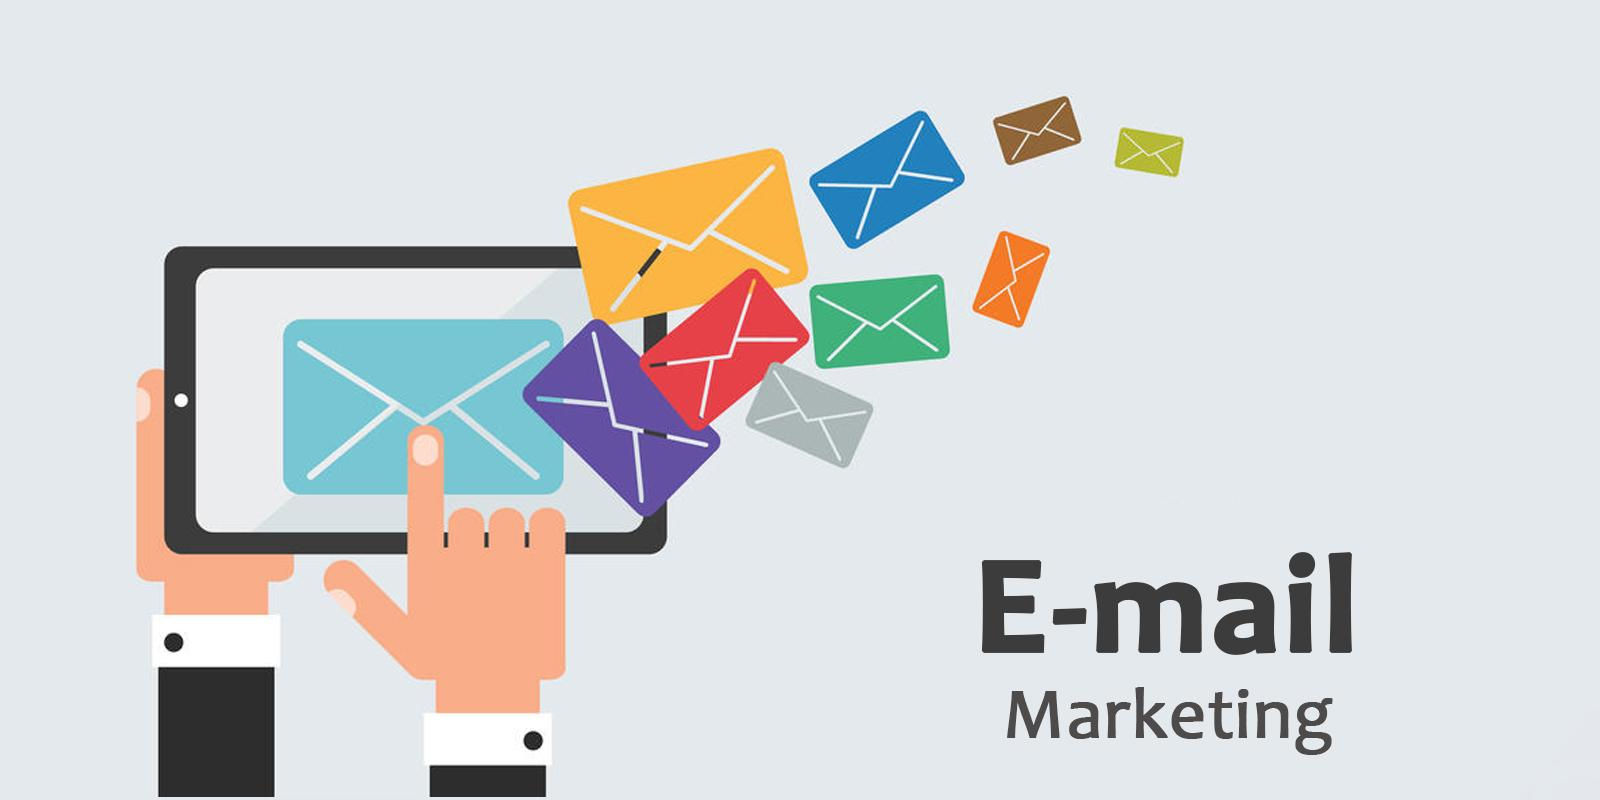 Fazendo E-mail Marketing eficiente